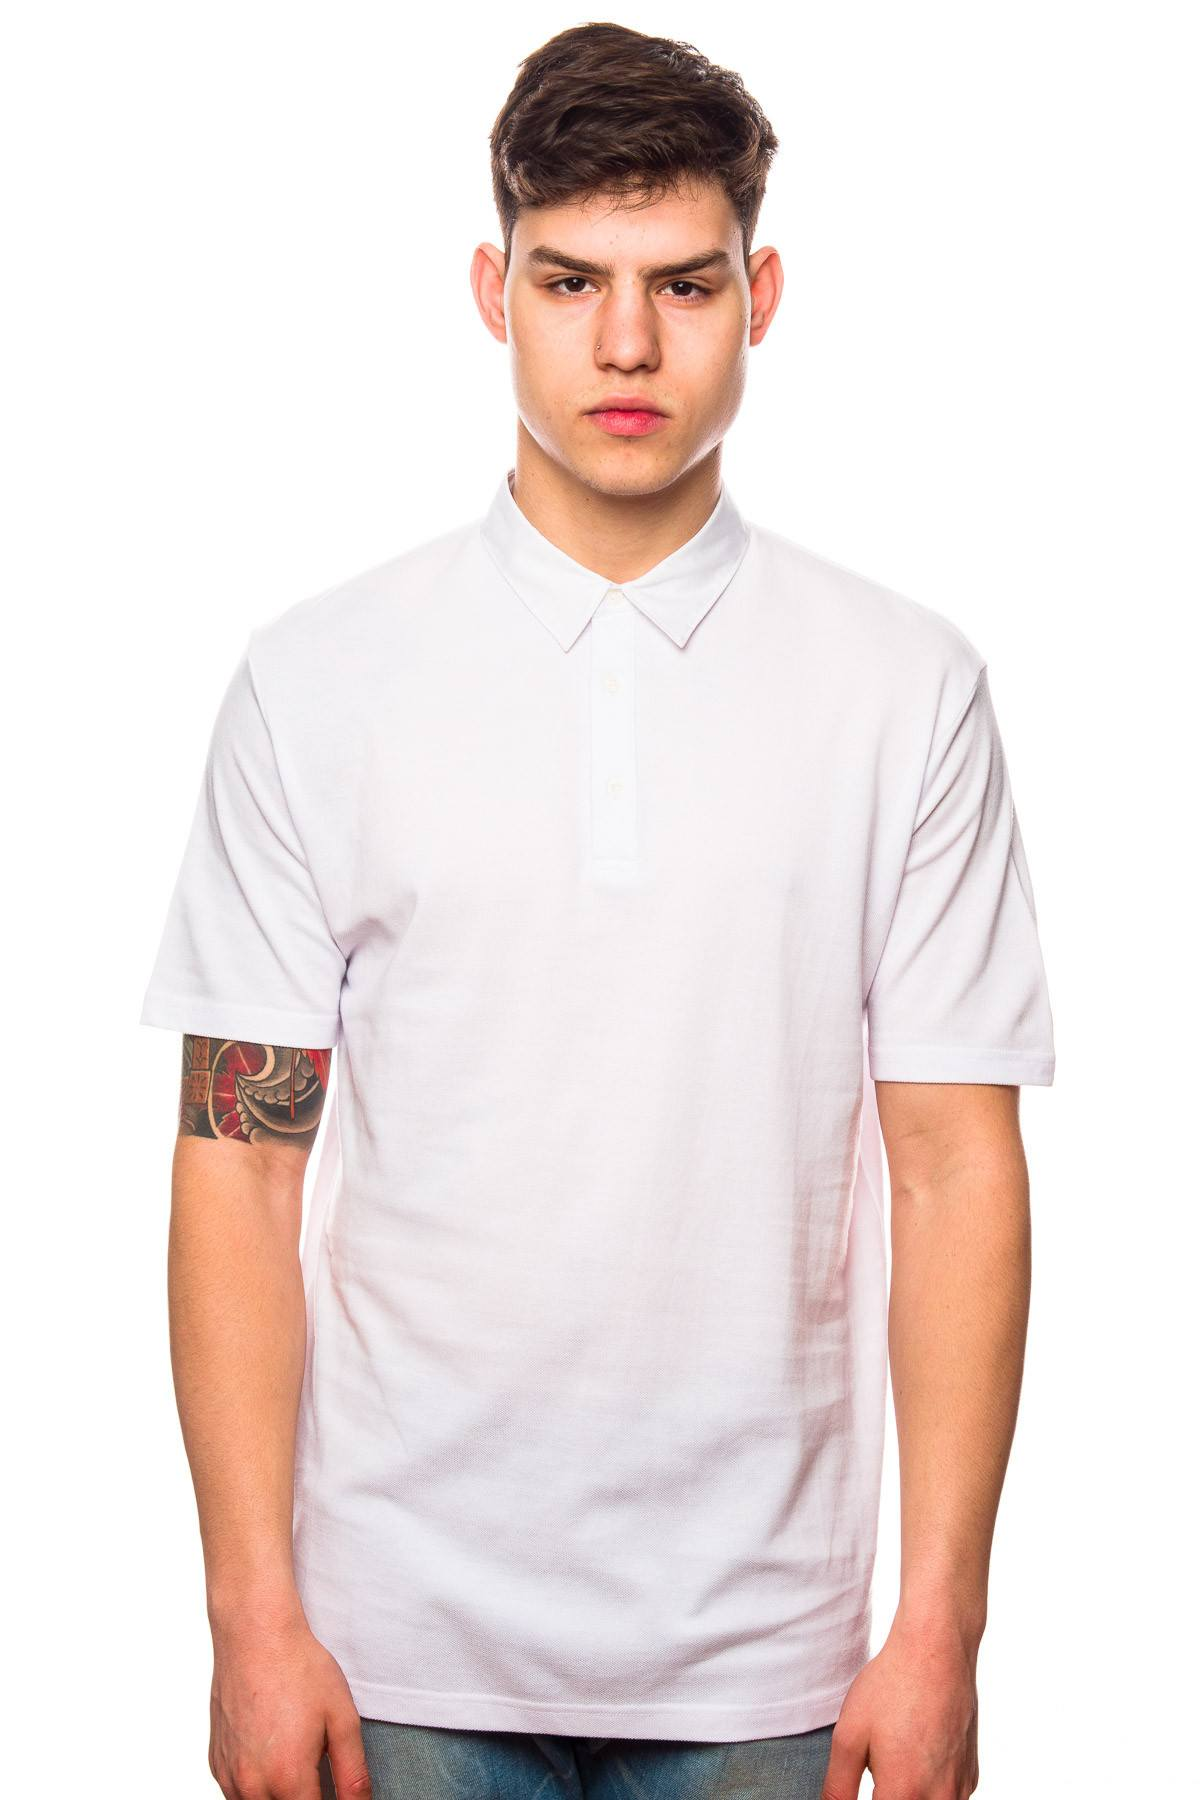 Polo - Shades Of Grey White Polo Shirt